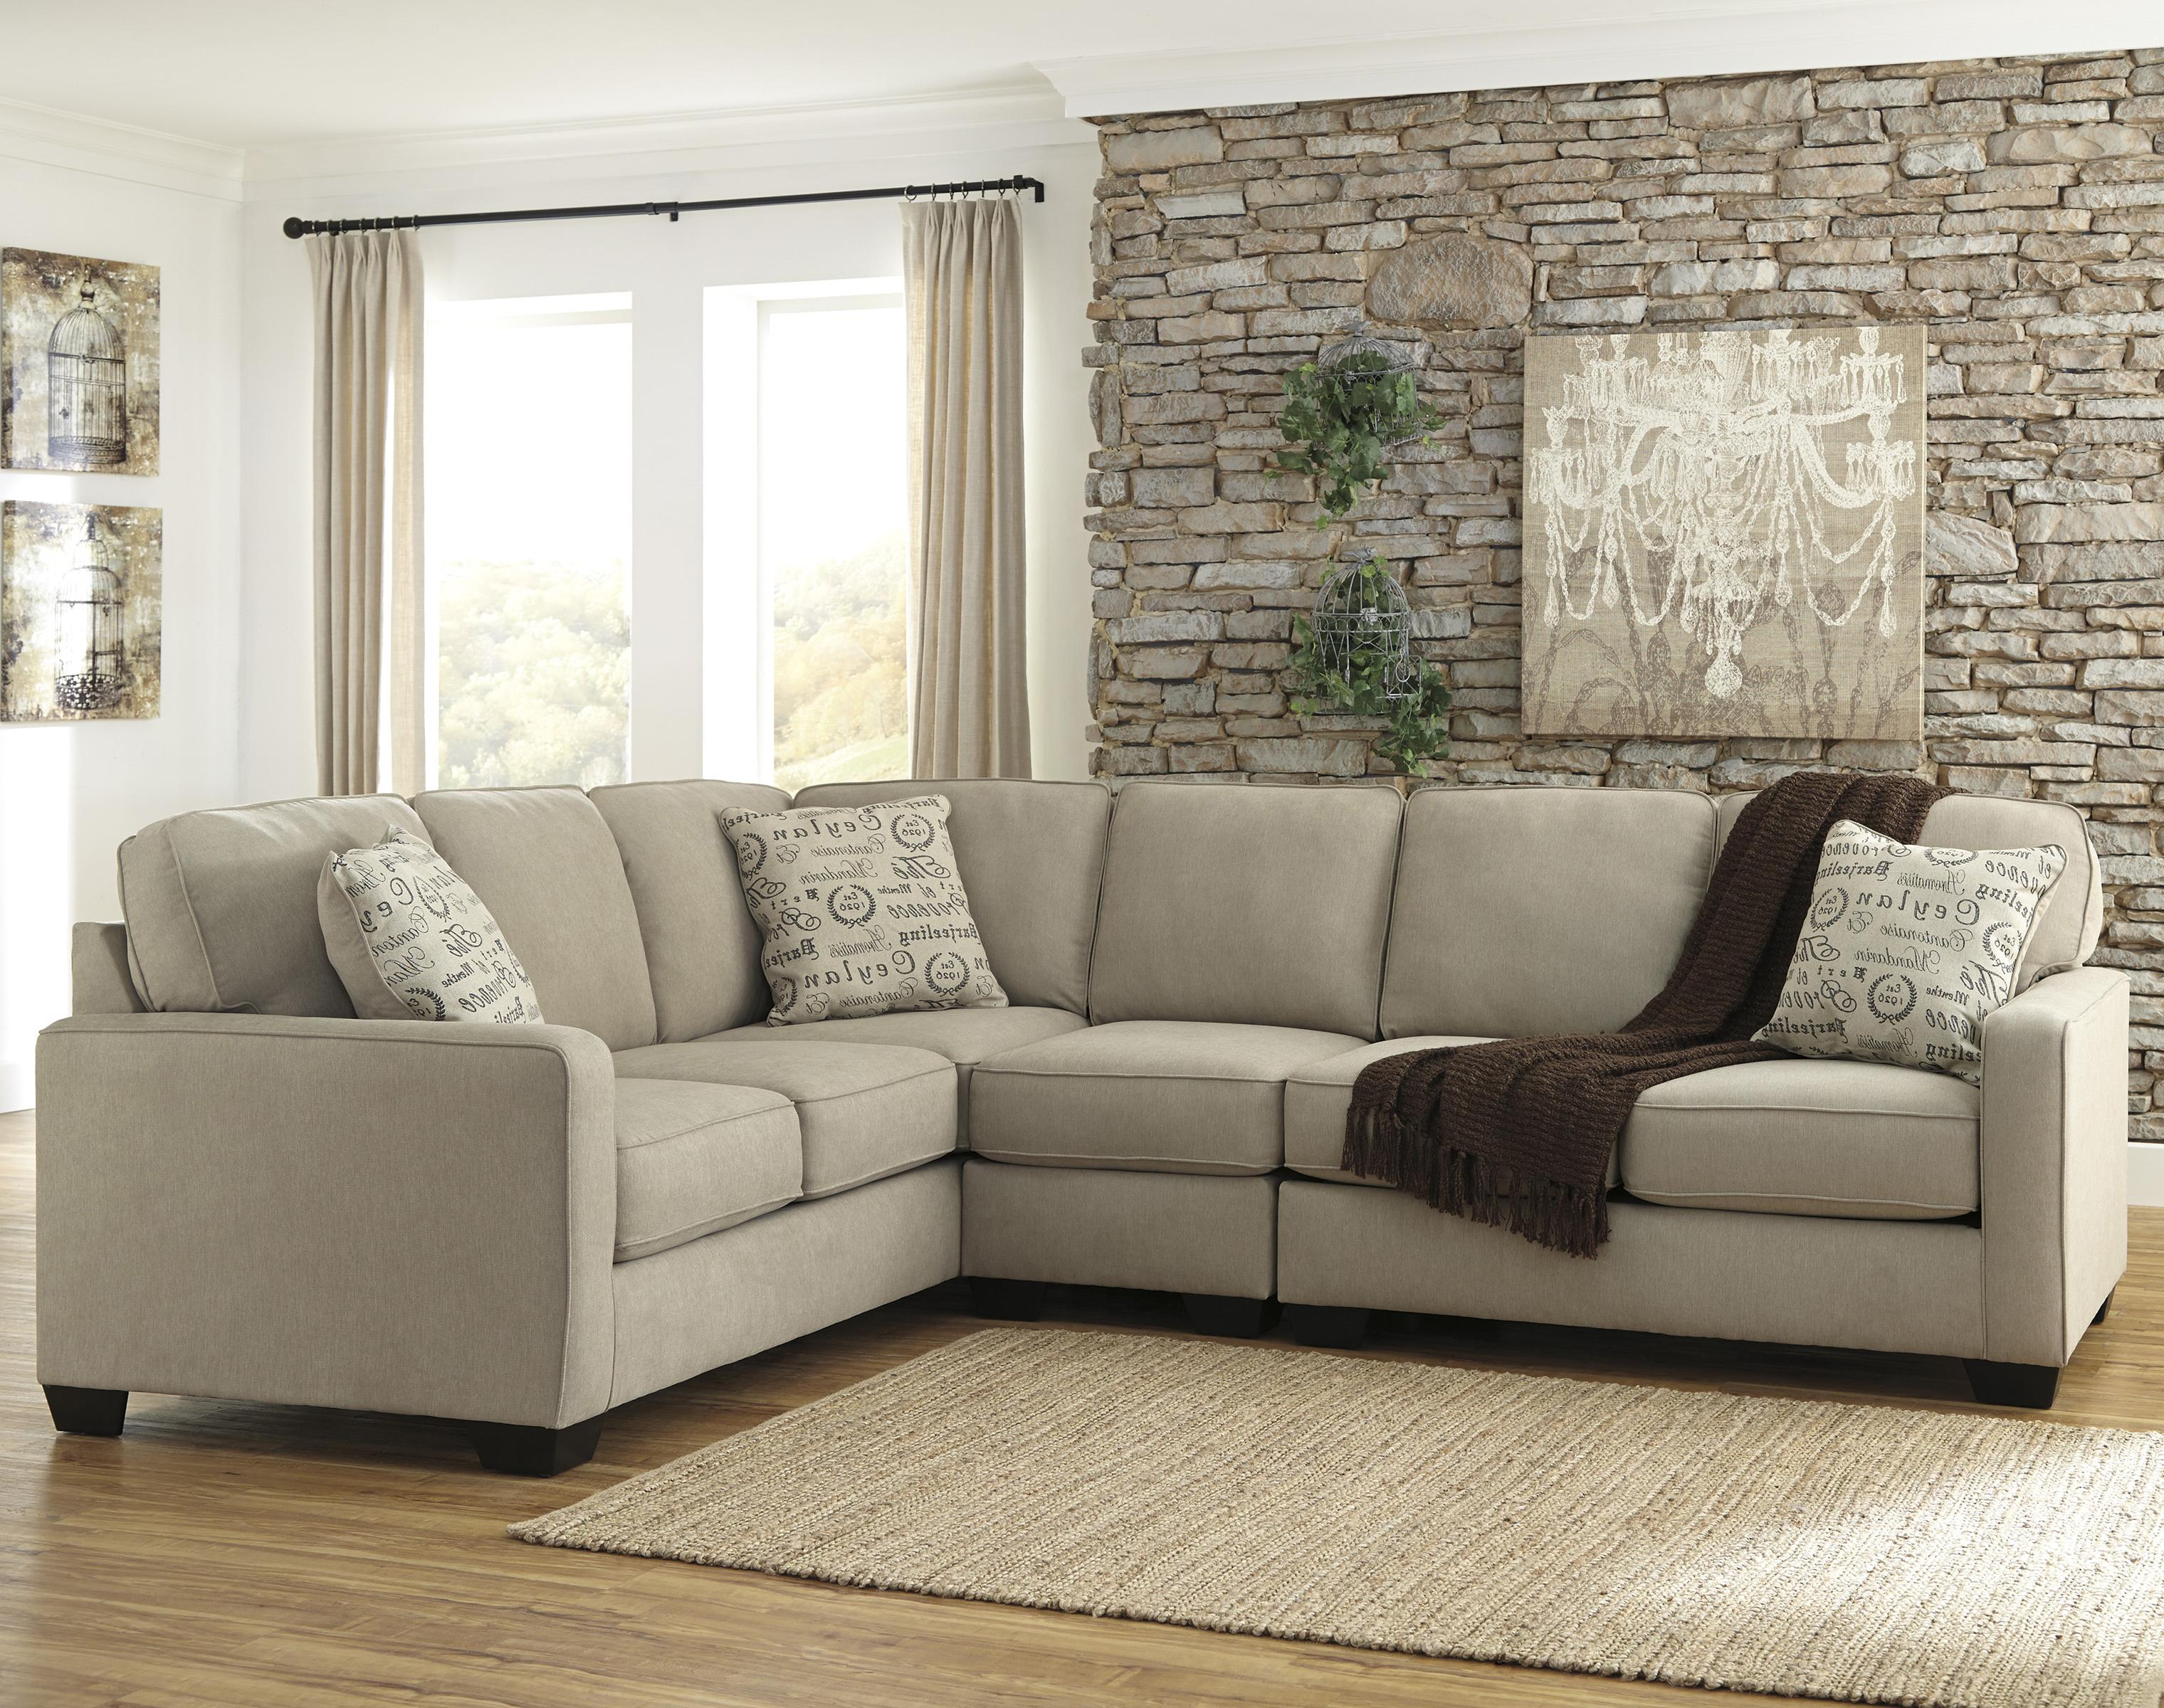 Signature Design by Ashley Alenya - Quartz 3-Piece Sectional with Right Loveseat - Item Number: 1660066+46+56